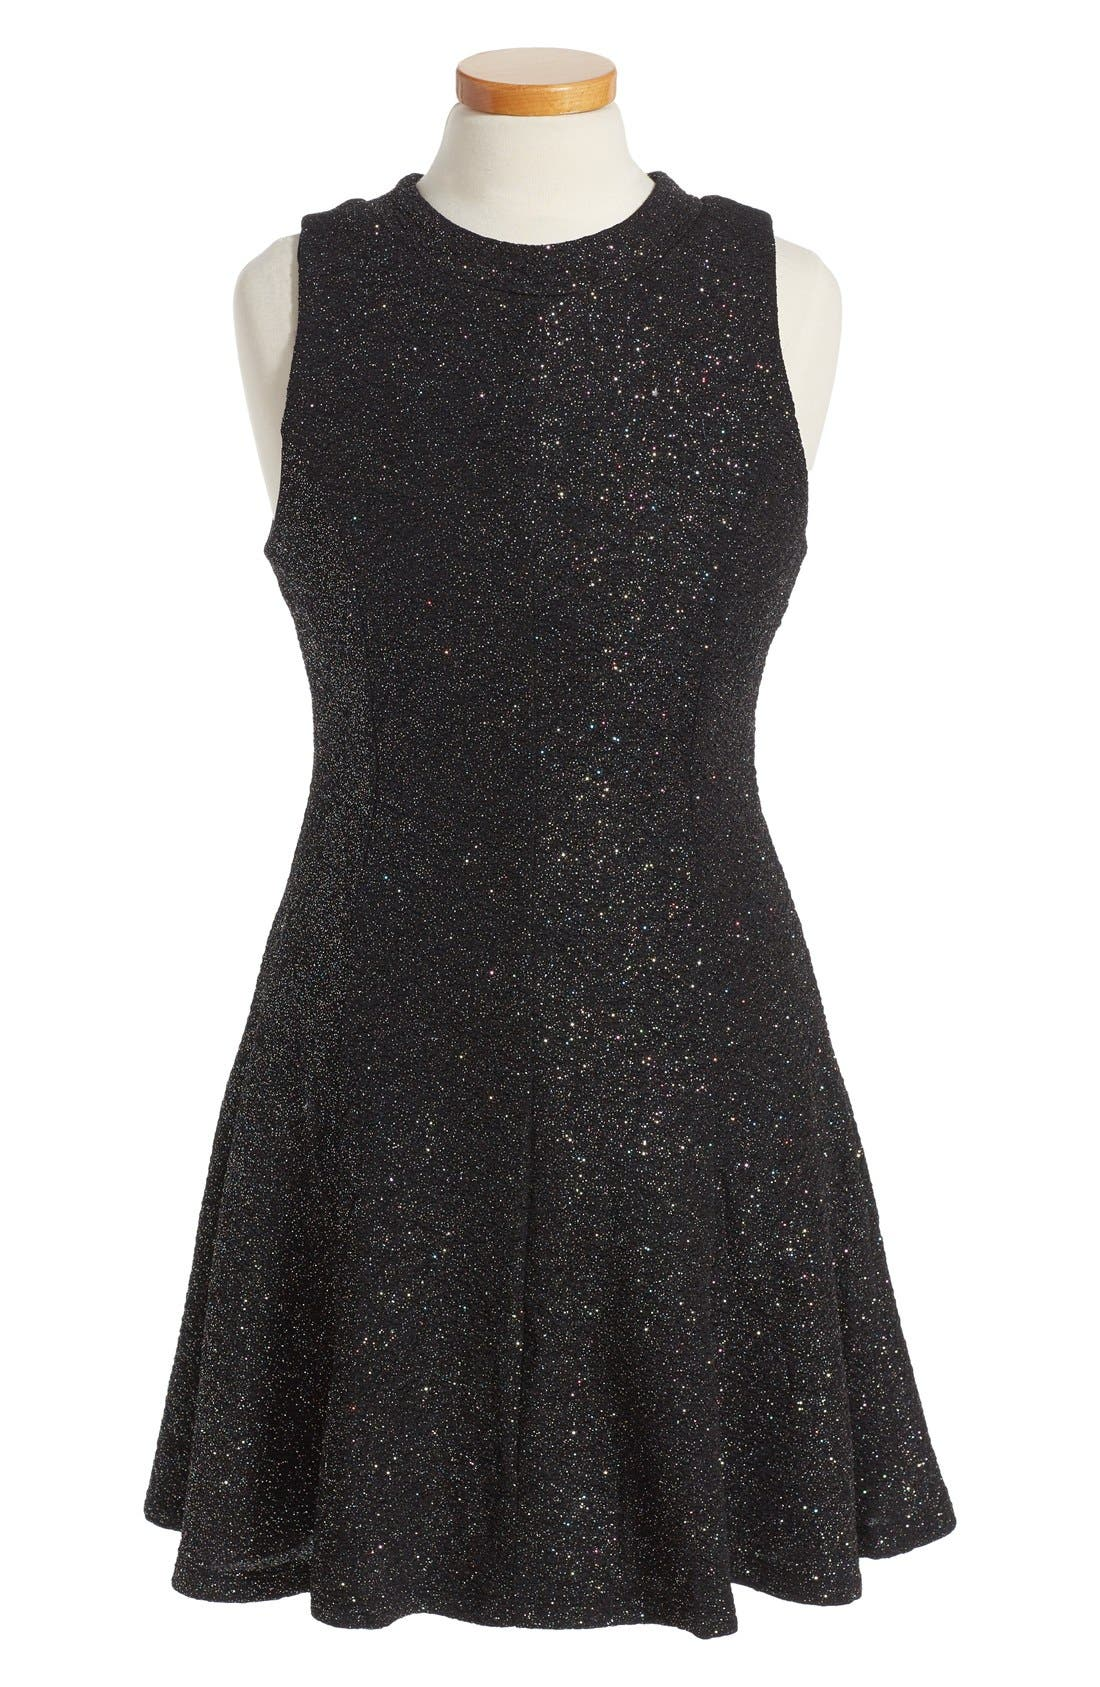 Shimmer Swing Dress,                         Main,                         color, Black